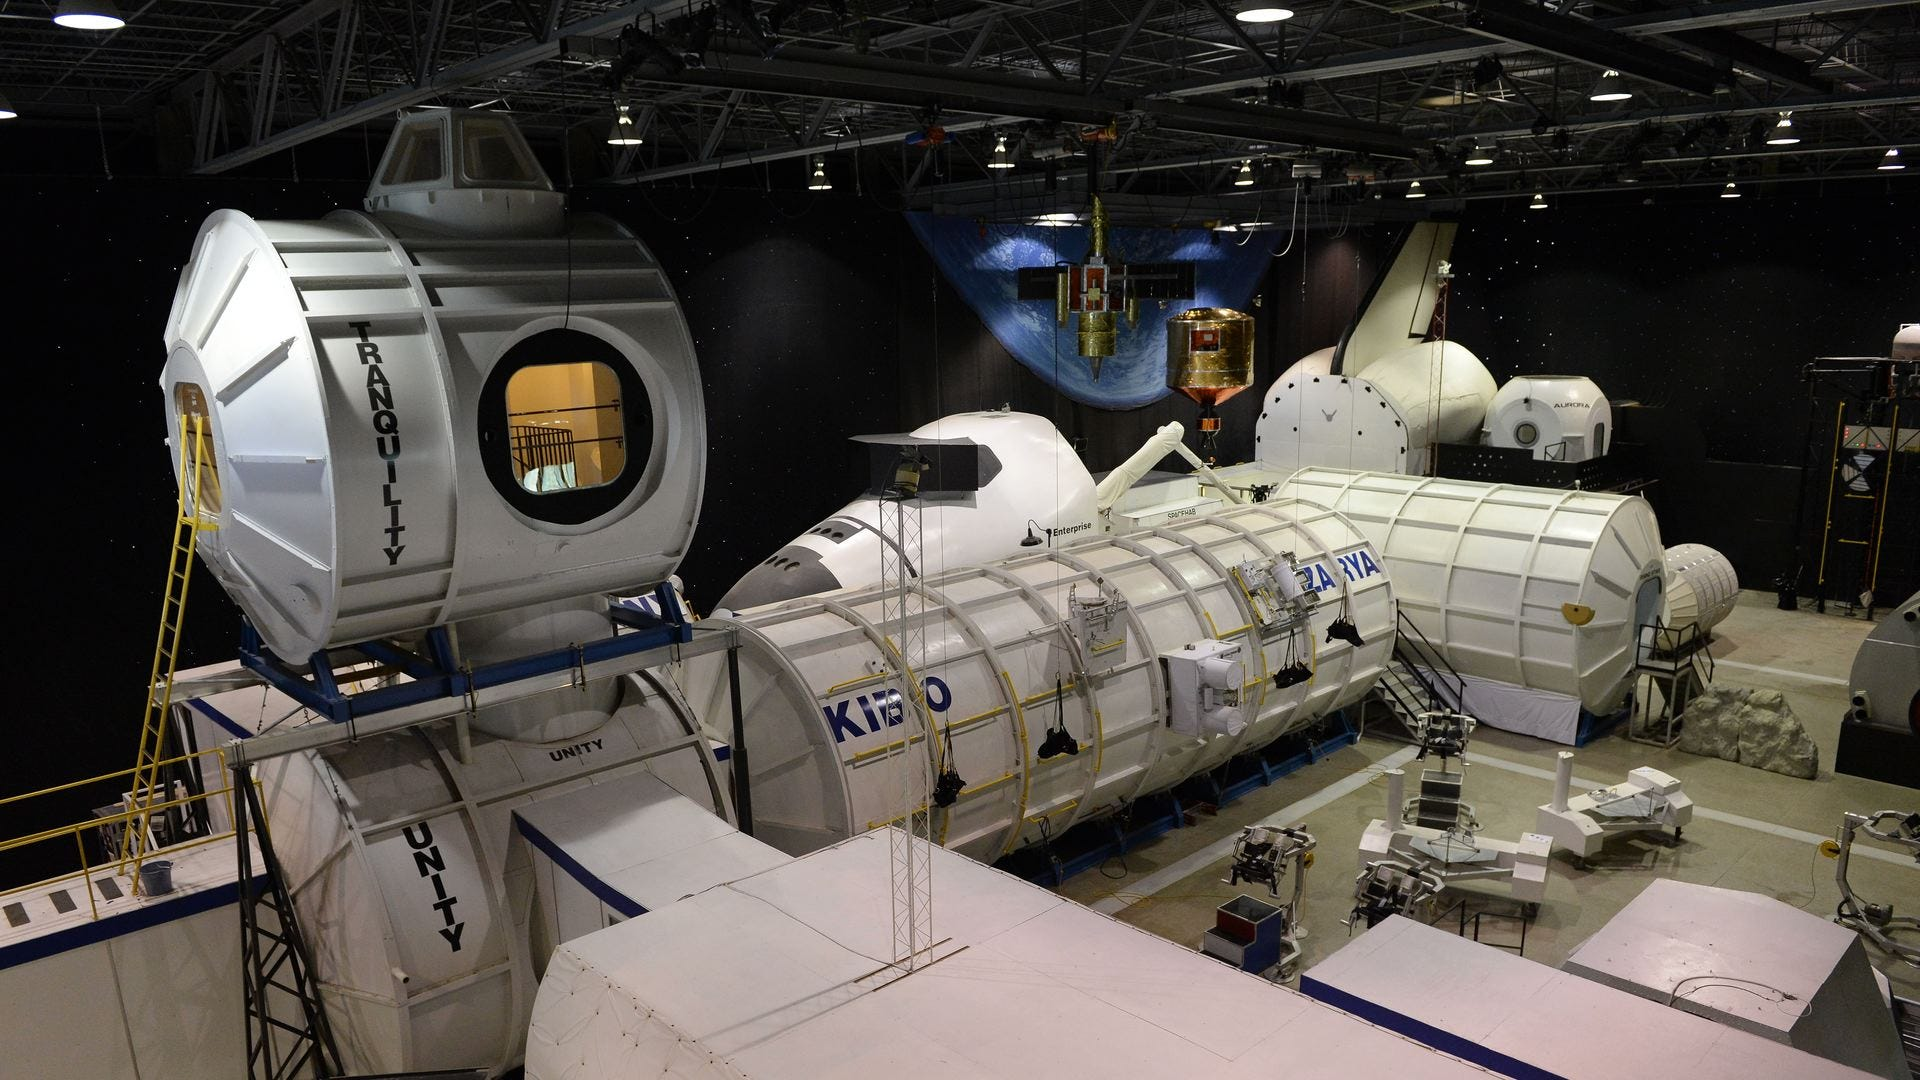 Space Camp launches kids toward science